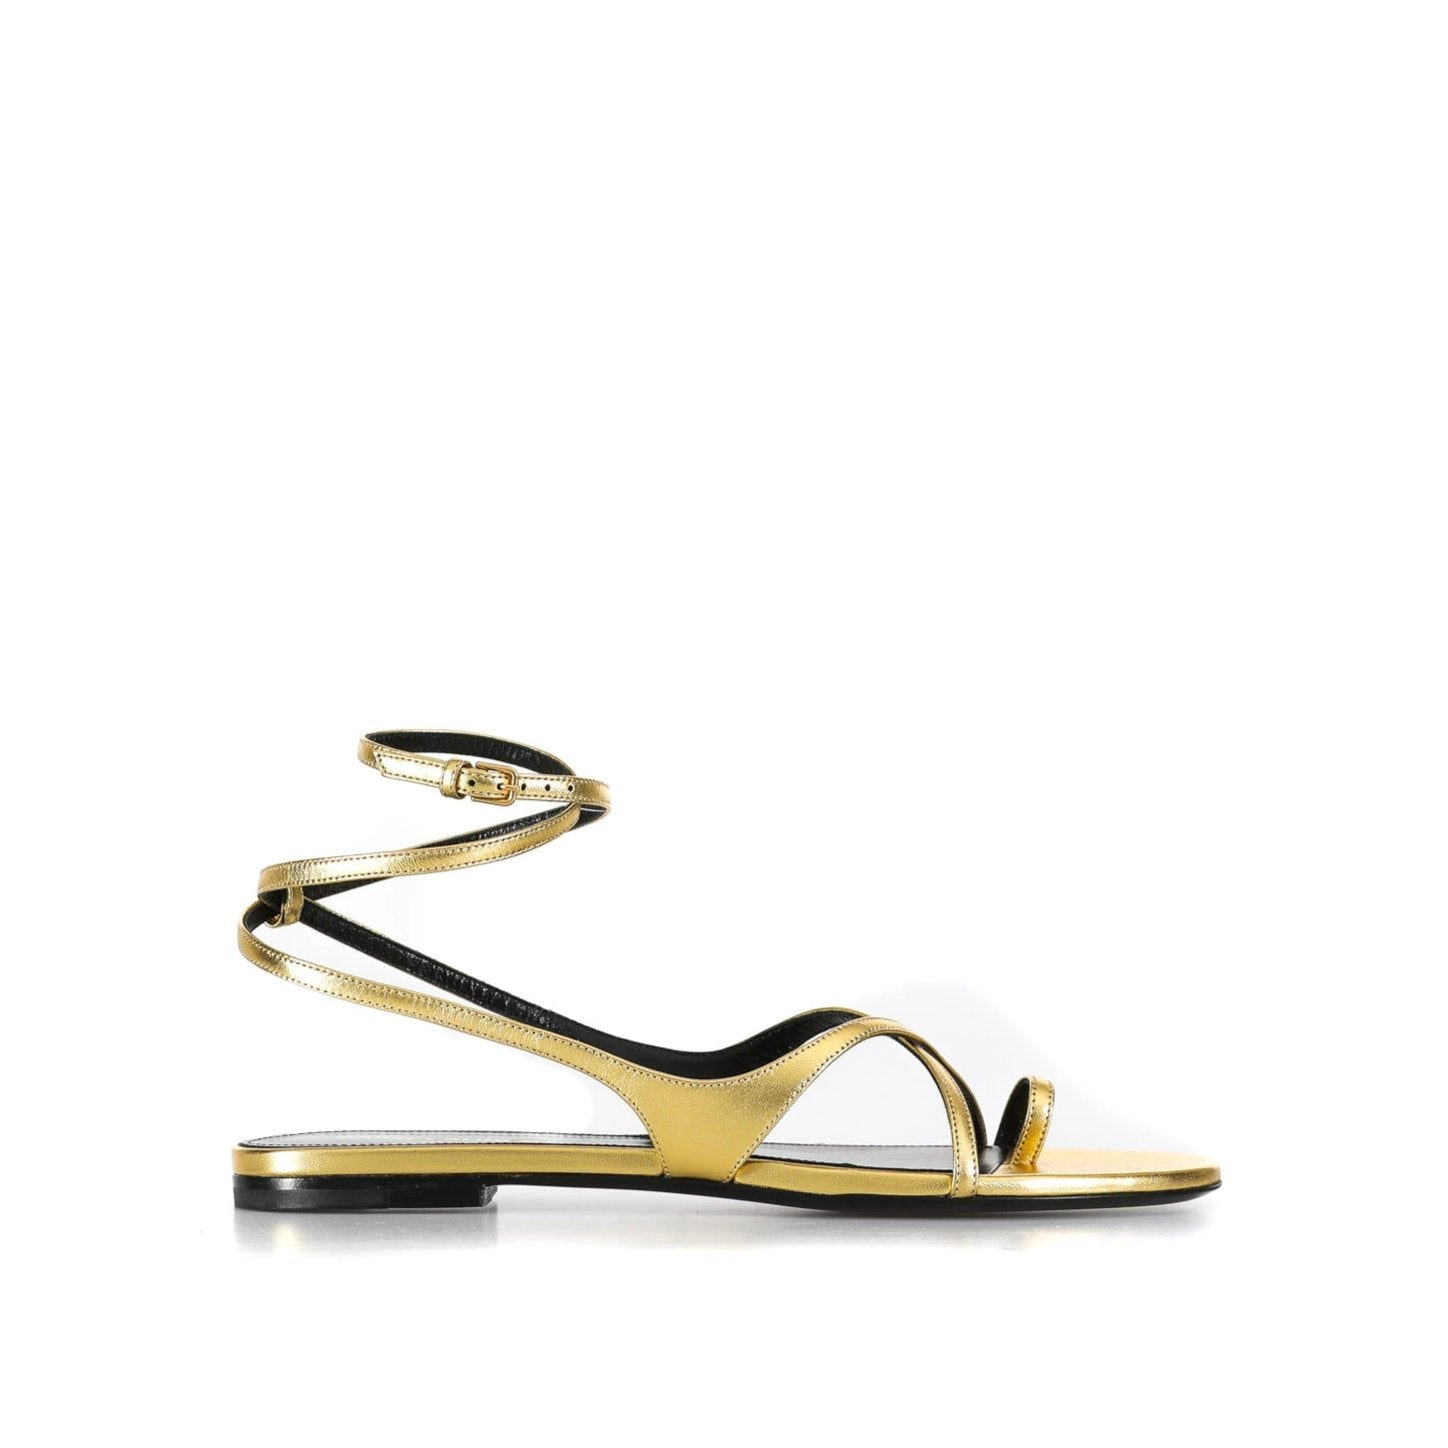 Yves Saint Laurent Flat Leather Sandals